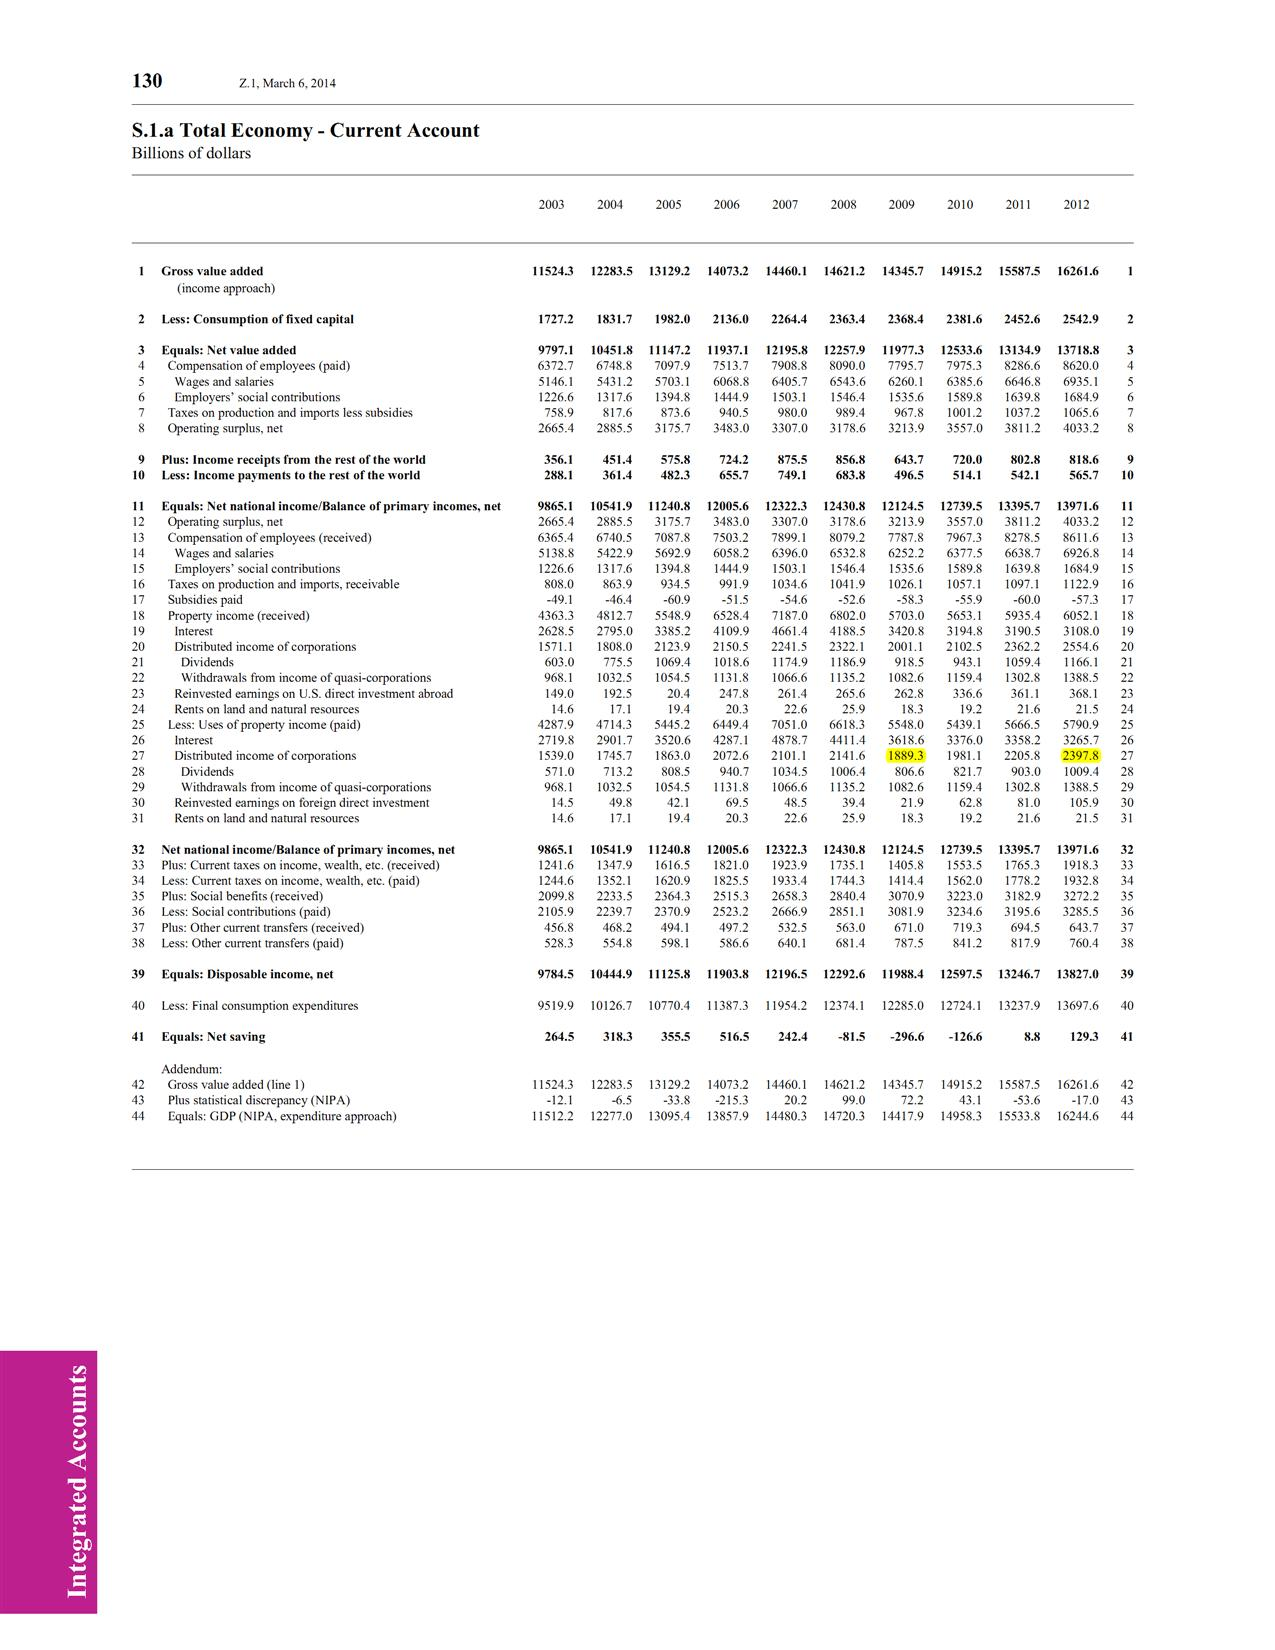 Table S.1.a, Z.1 Q4 2013